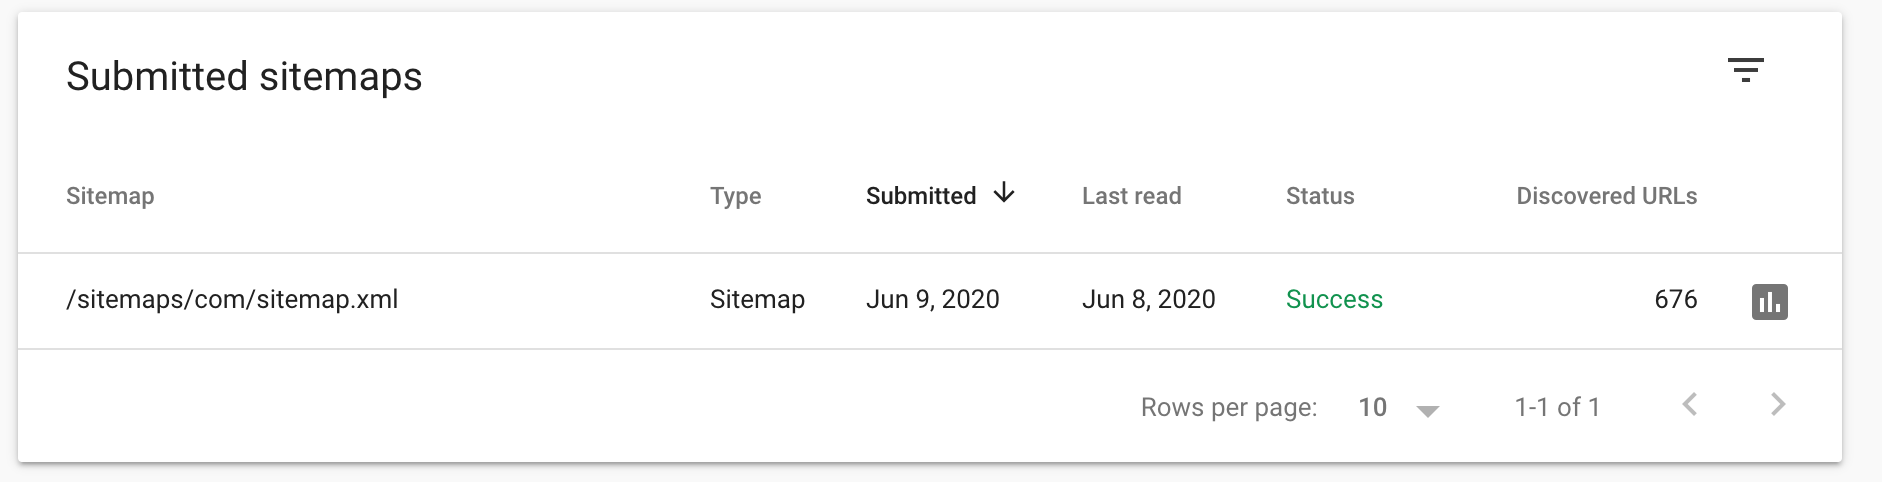 Showing already submitted sitemaps